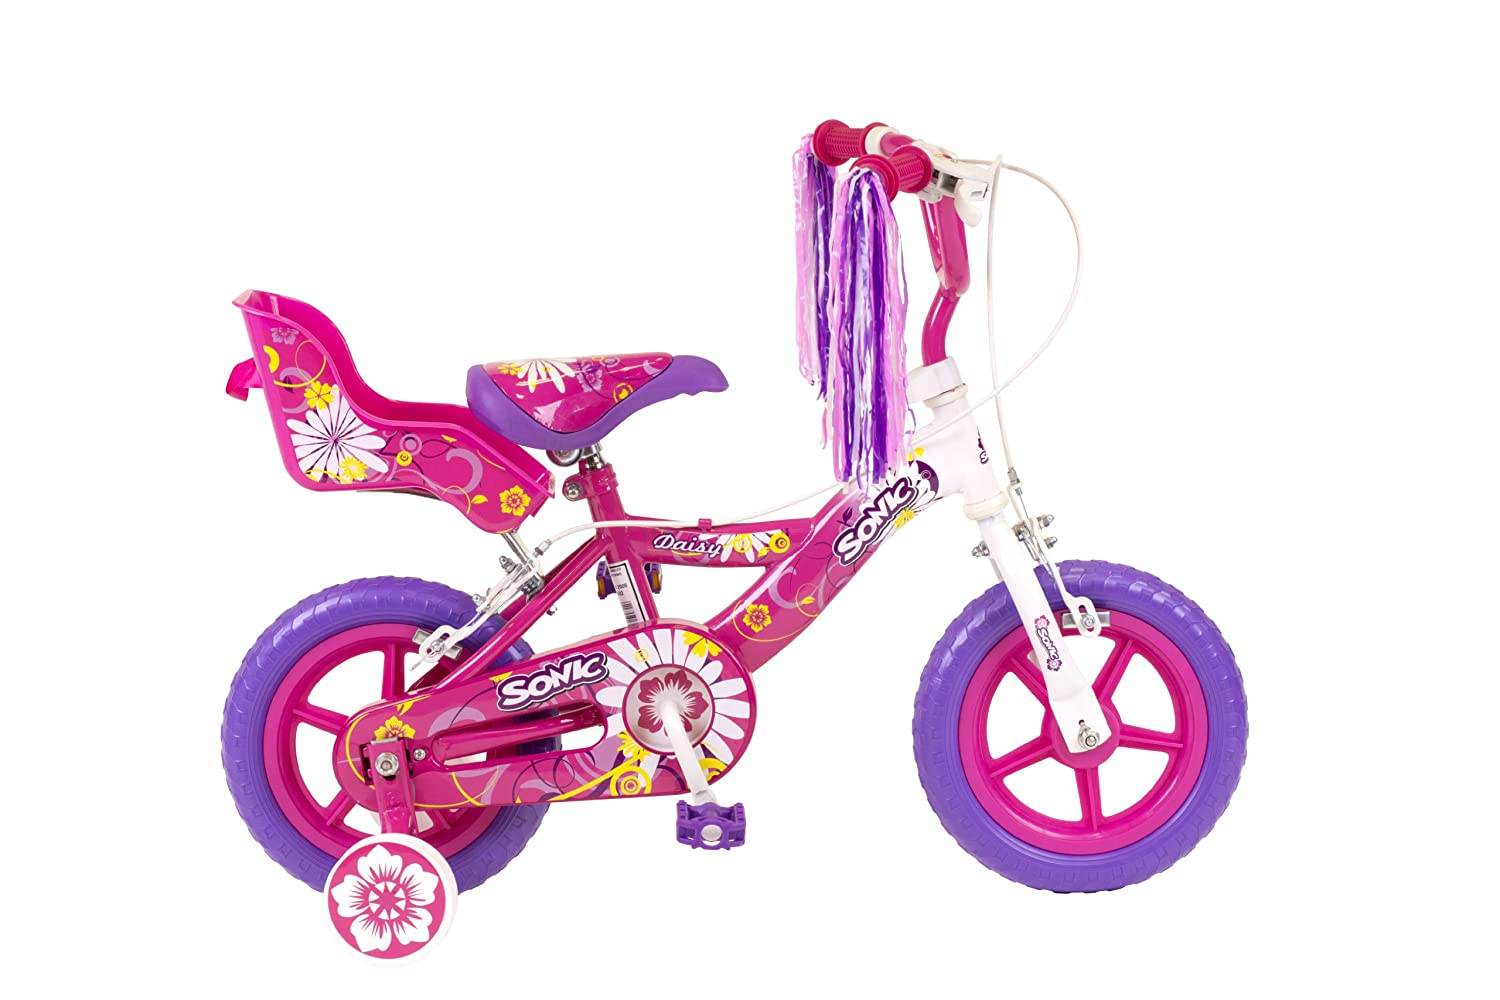 Bikes For Girls Age 6 Sonic Daisy Girls Bike